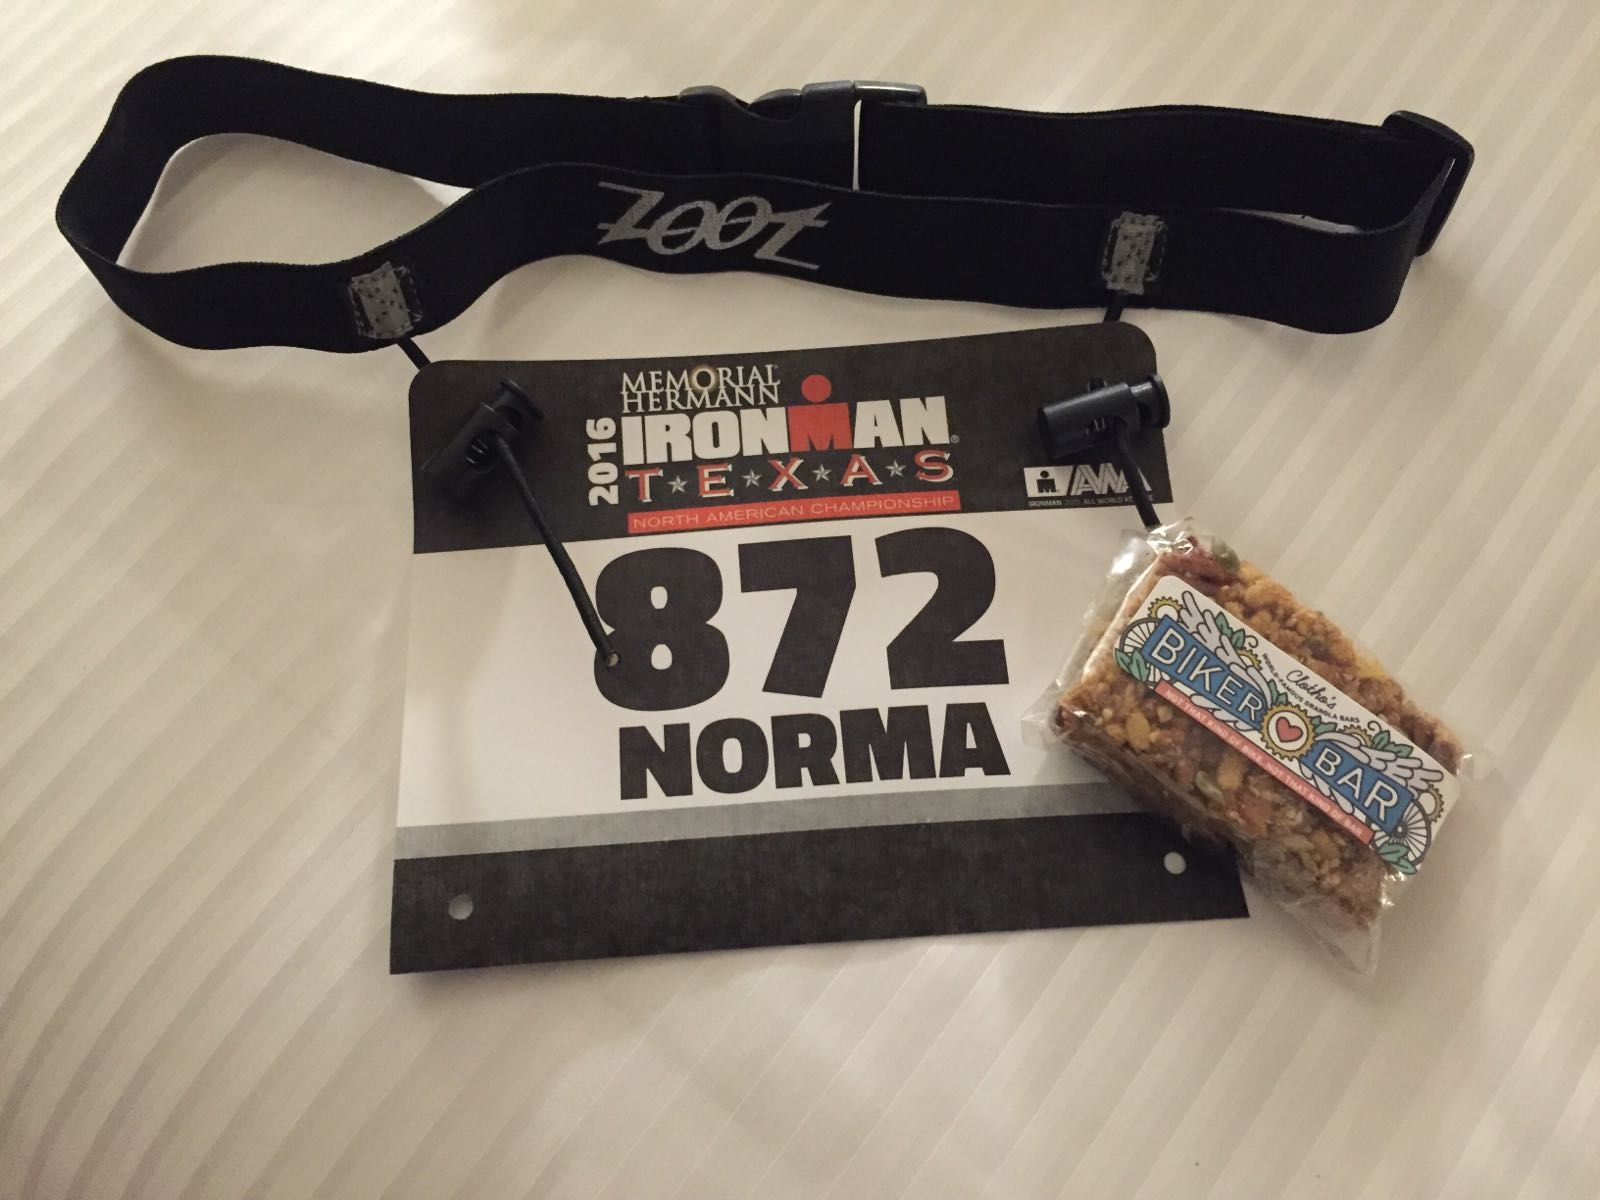 Norma from Houston sent these two photos from her debut Ironman race, which she finished strong despite insane weather including torrential rain, hail, and hurricane-force winds!